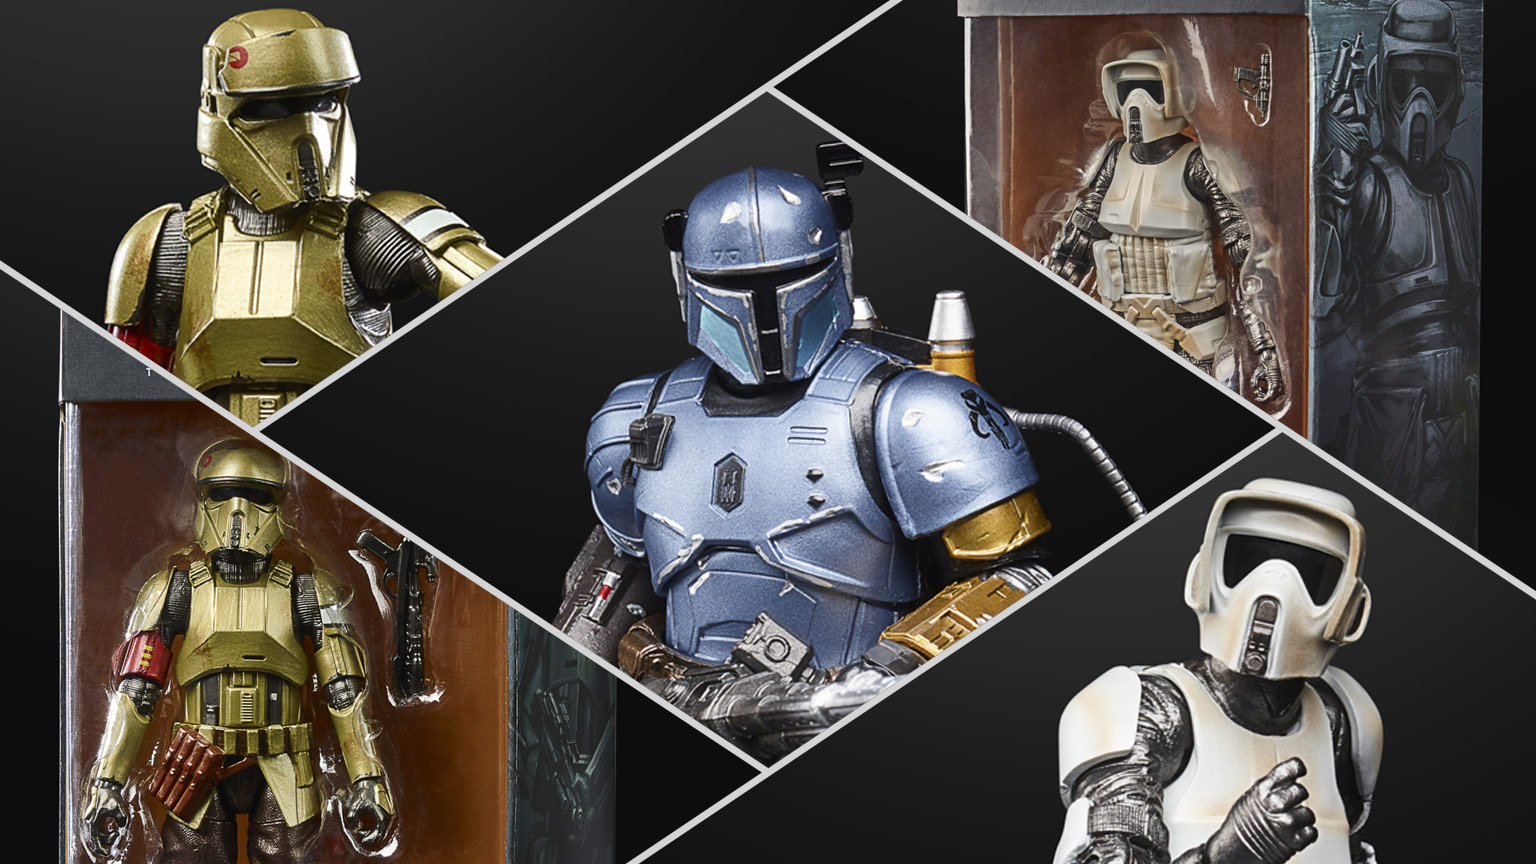 Star Wars: The Black Series Carbonized Collection figures.